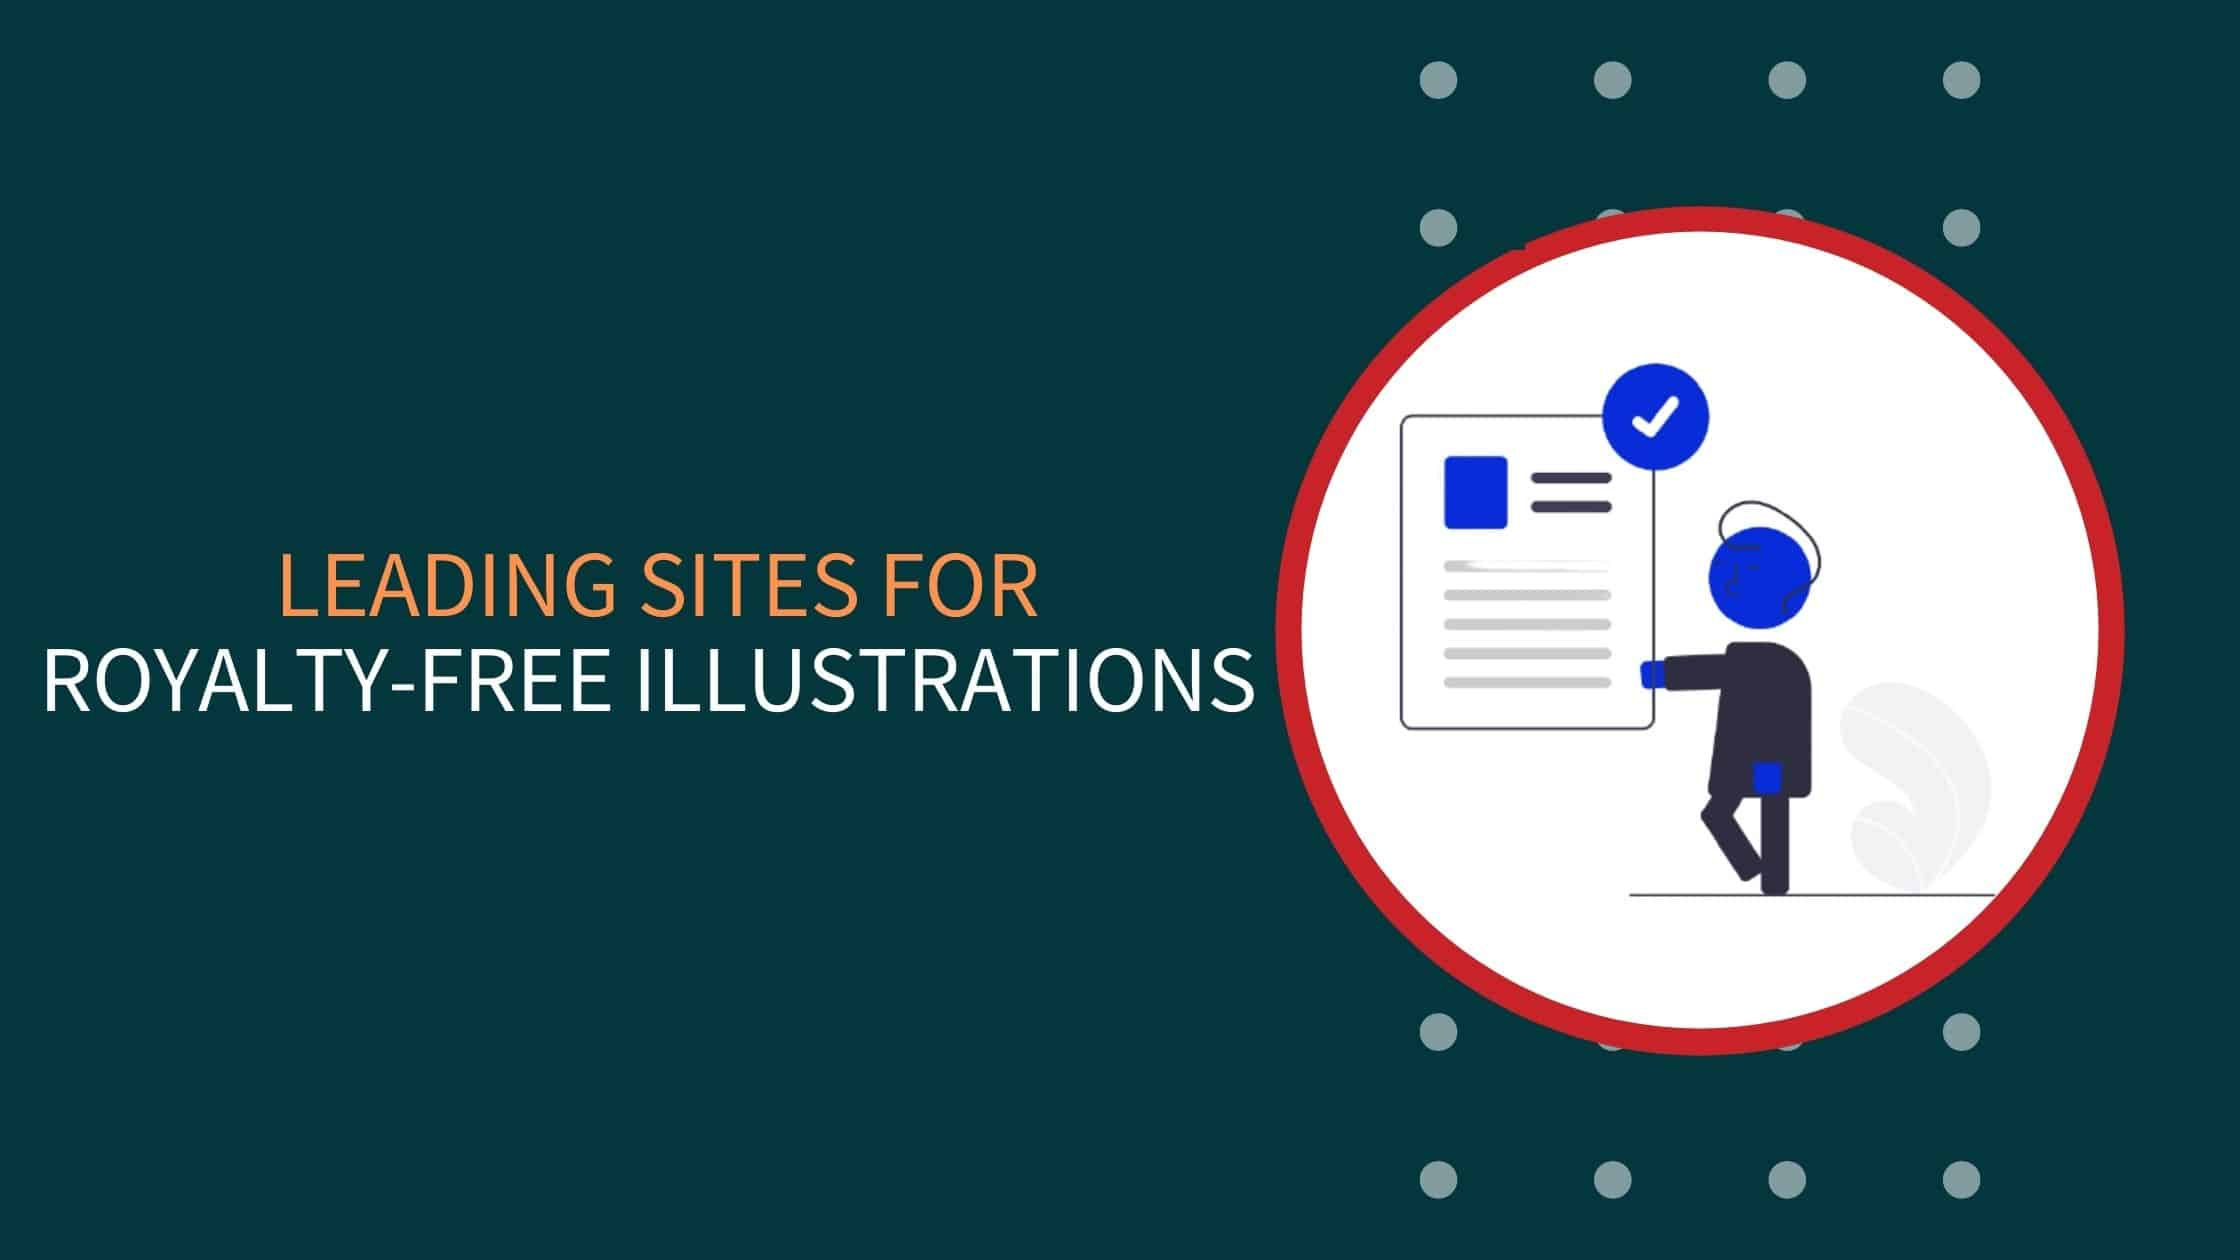 11 Leading Sites For Royalty-Free Illustrations For Any Project